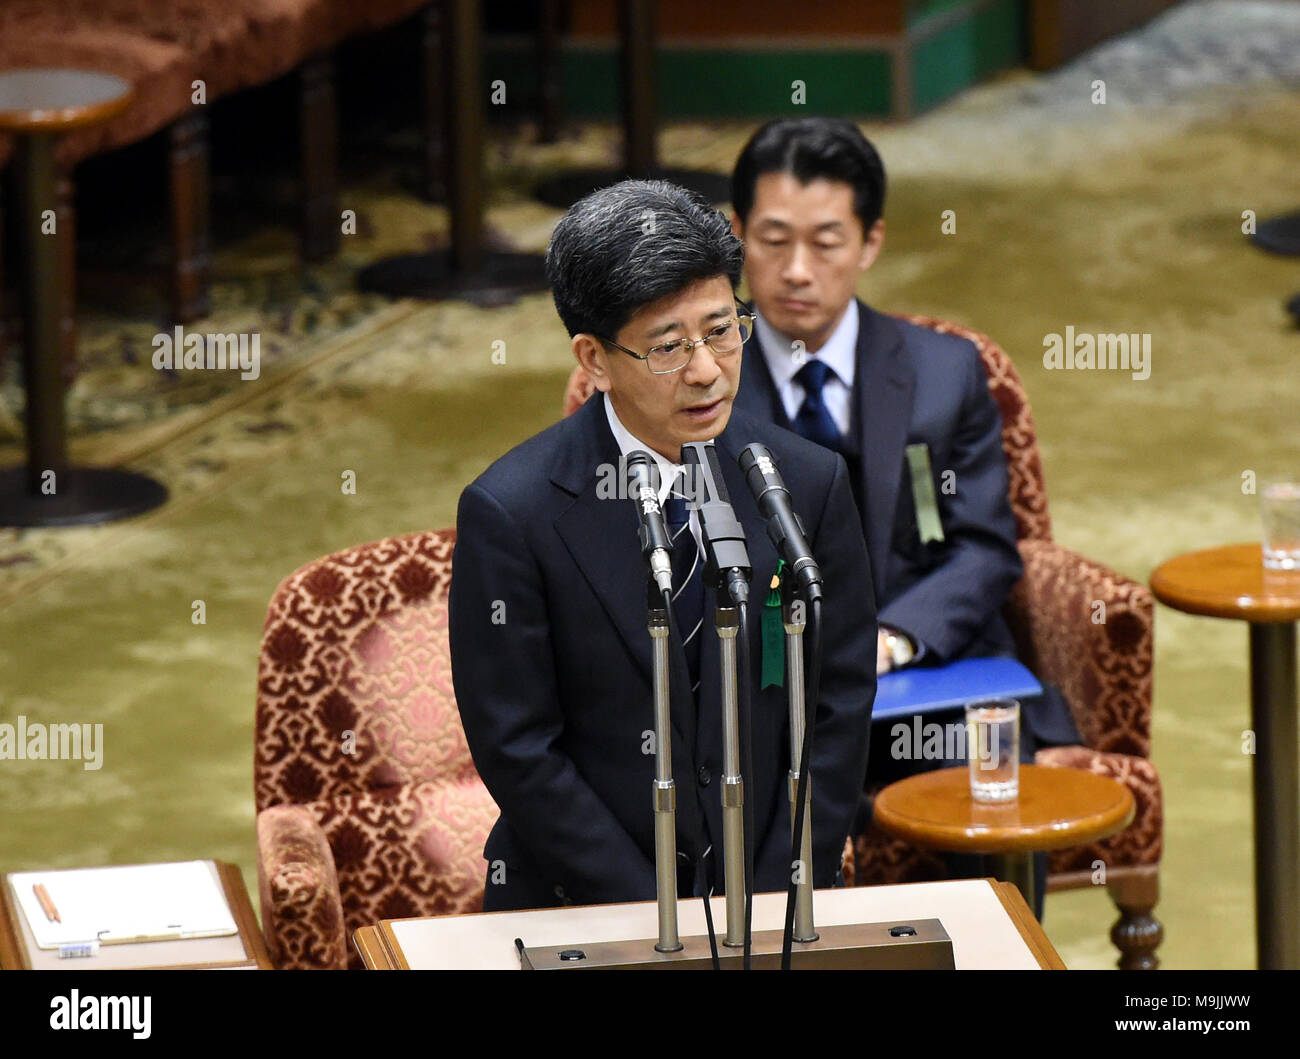 (180327) -- TOKYO, March 27, 2018 (Xinhua) -- Former head of the National Tax Agency Nobuhisa Sagawa (front) appears as a sworn witness in the Diet, Japan's bicameral legislature, in Tokyo, Japan, March 27, 2018. A key figure in a document-tampering scandal involving Japan's Finance Ministry appeared in the Diet on Tuesday to give sworn testimony over the falsification of government documents related to the heavily discounted sale of state land to a nationalist school operator. Former national tax agency head Nobuhisa Sagawa, who was previously in charge of taking care of the land sale, steppe - Stock Image